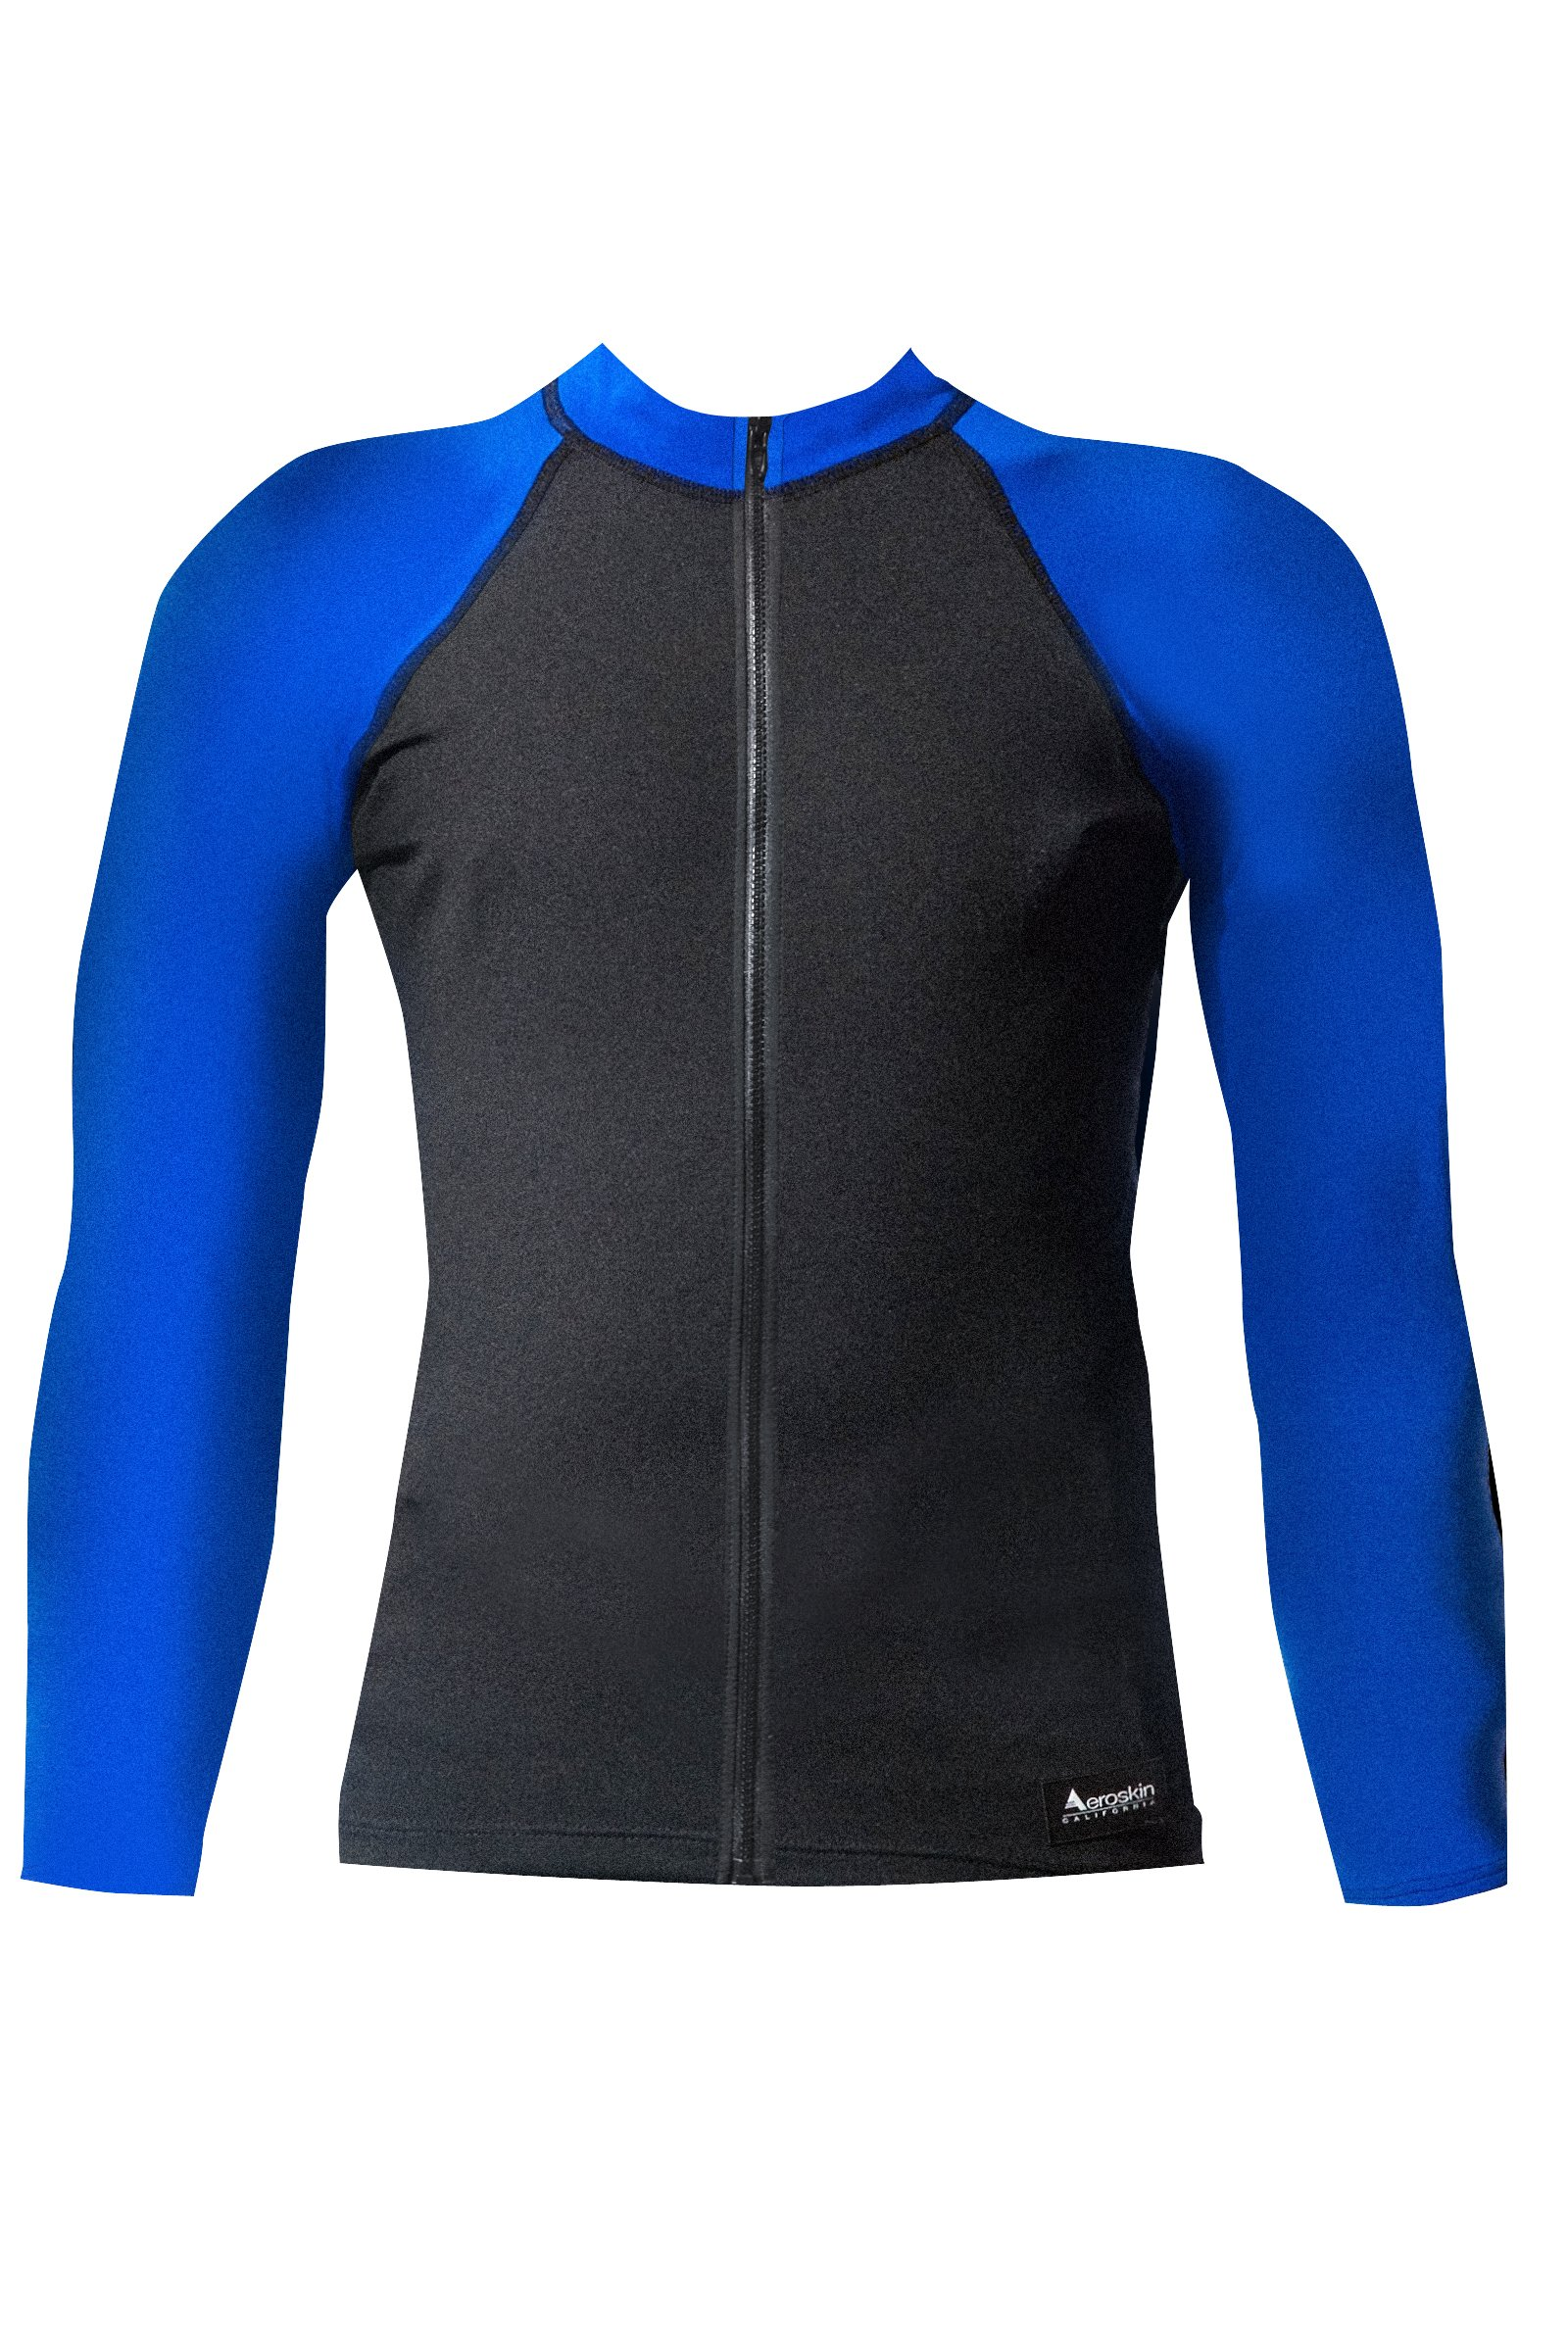 Aeroskin Raglan Long Sleeve Shirt with Color Accents, Fuzzy Collar and Front Zip (Black/Blue, X-Small)